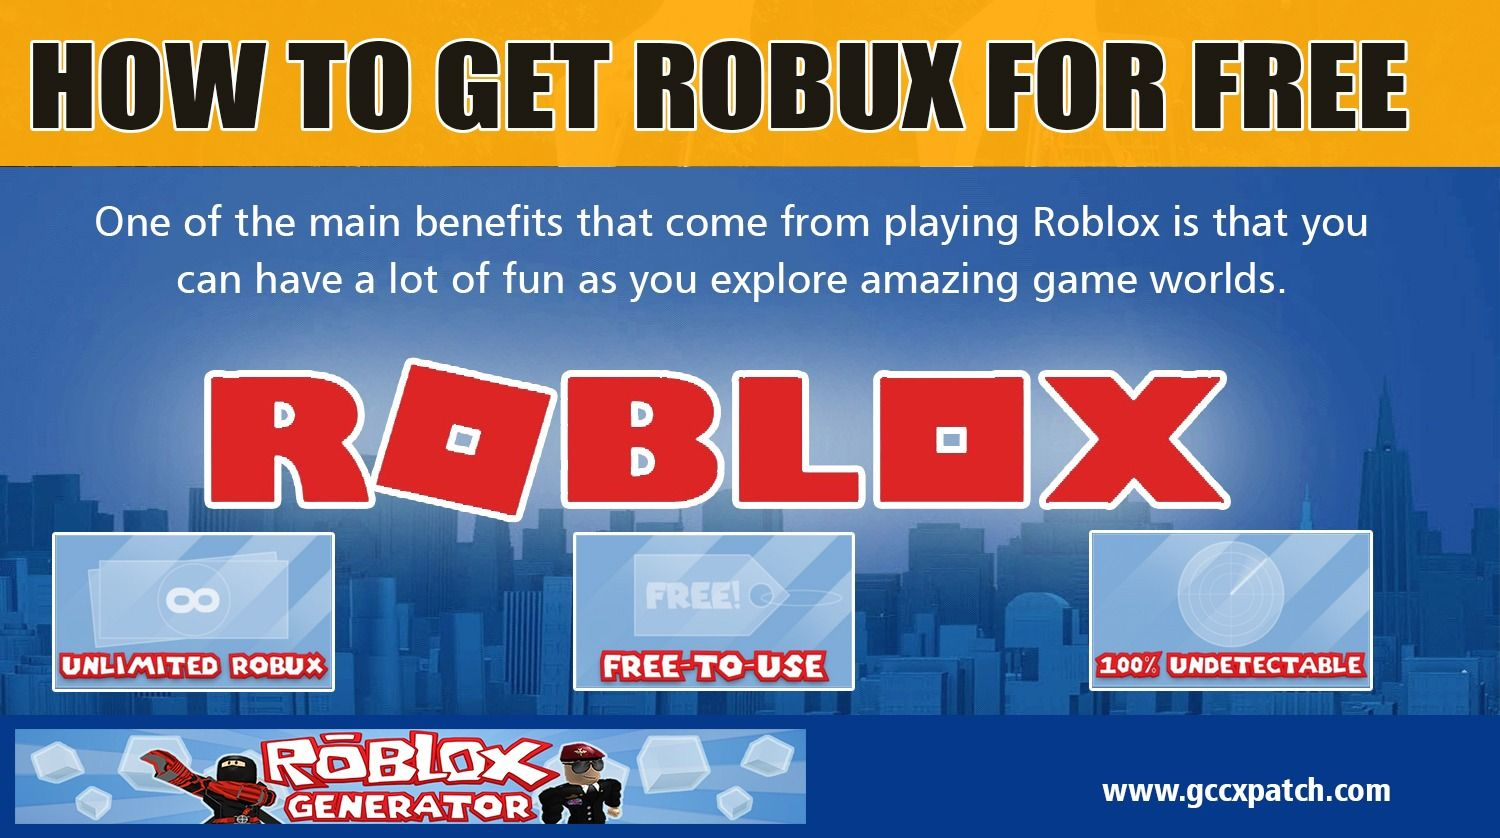 How to Get Free Robux by howtogetfreerobux from howtogetfreerobux